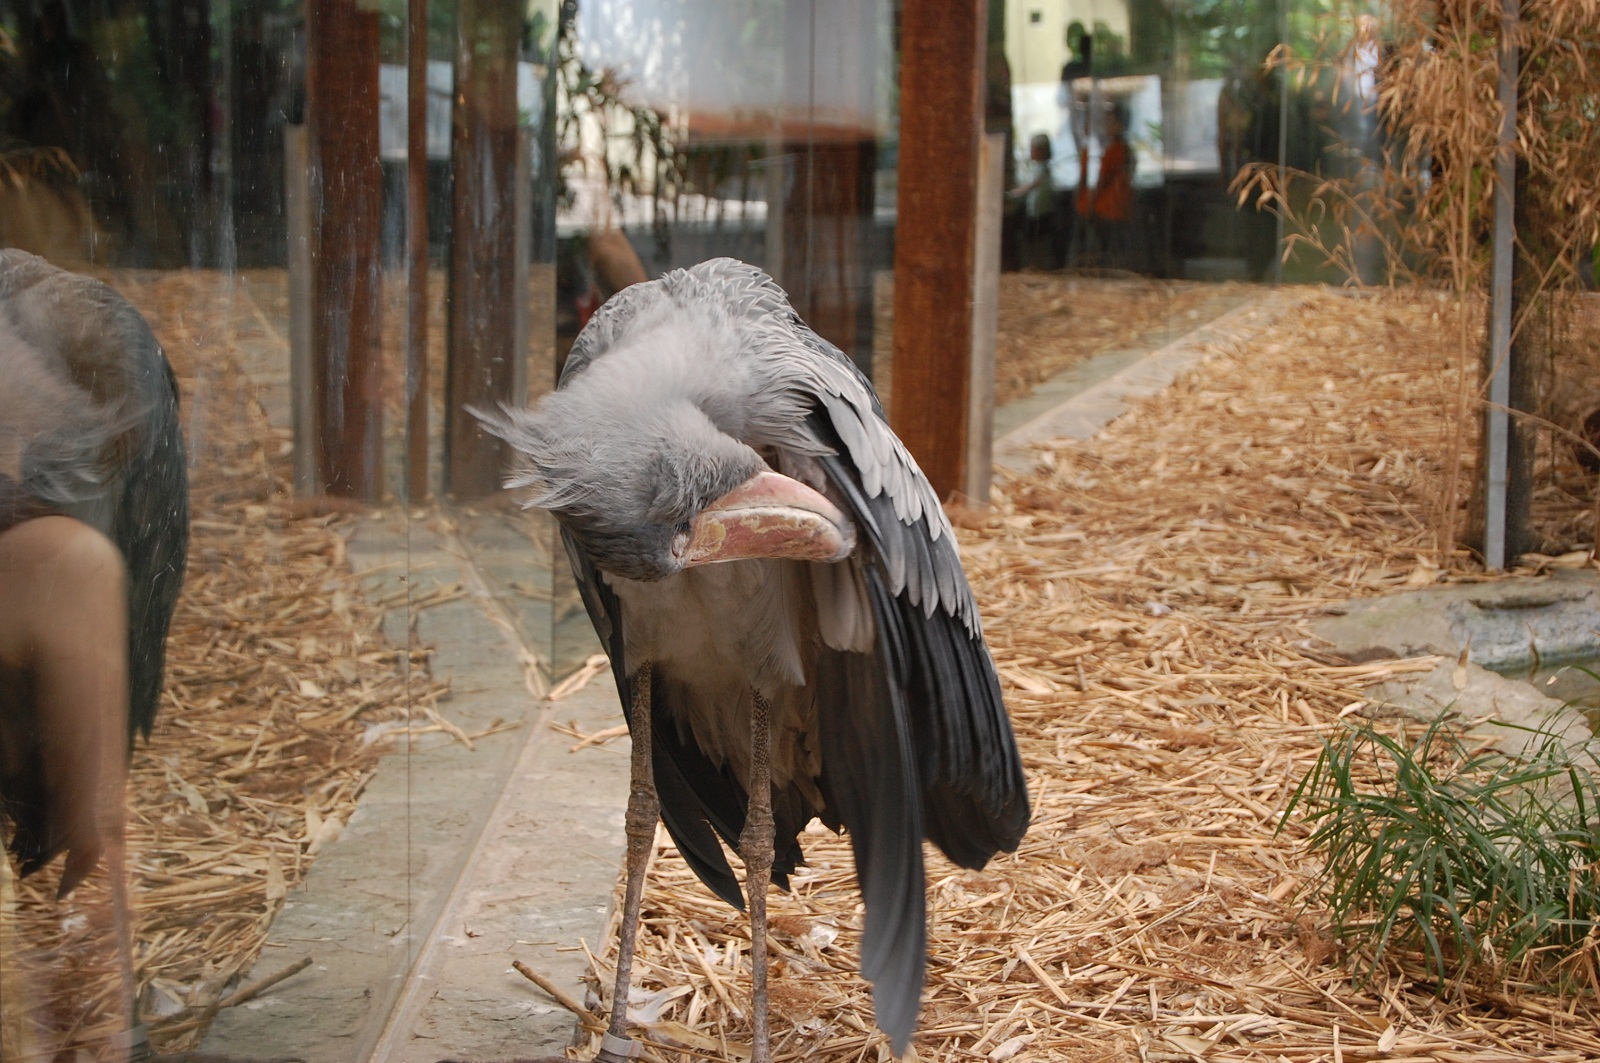 Frankfurt Zoo, Germany, Shoebill bird